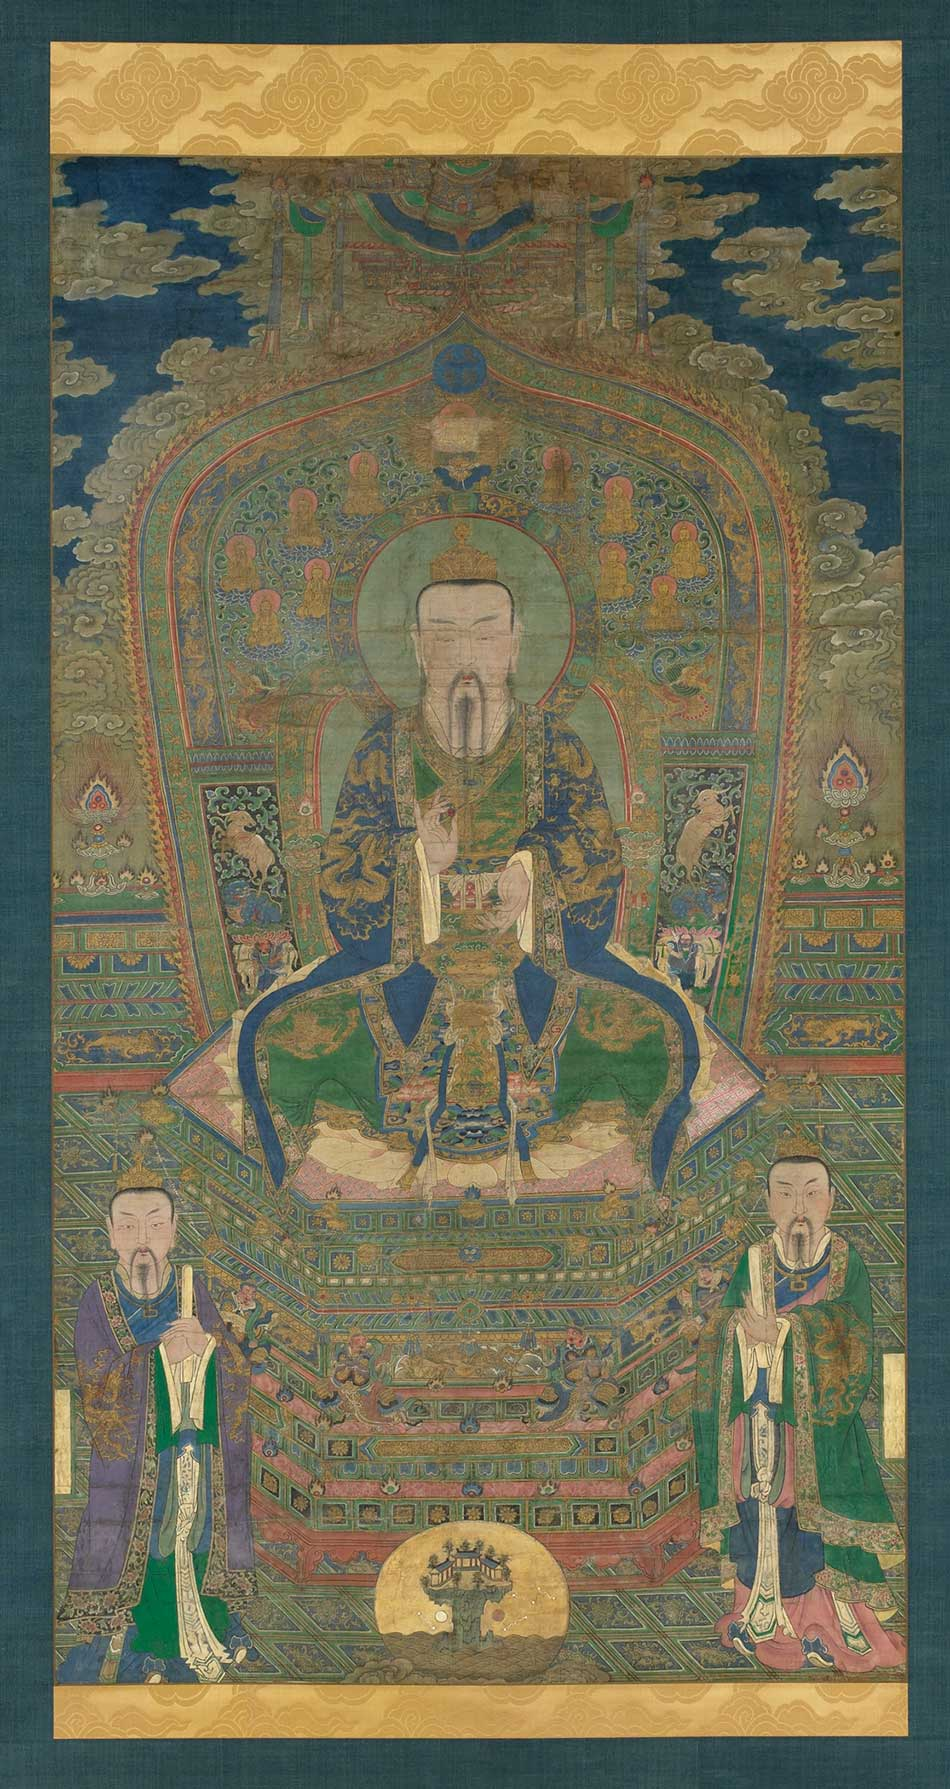 an analysis of the supreme deity of the japanese religion of shintoism called amateratsu List of ancient and actual deities in the different religions, cultures and mythologies the gods and goddesses of japan shinto (the way of the gods) was the original religion in japan and had no written literature before the arrival of the buddhists.